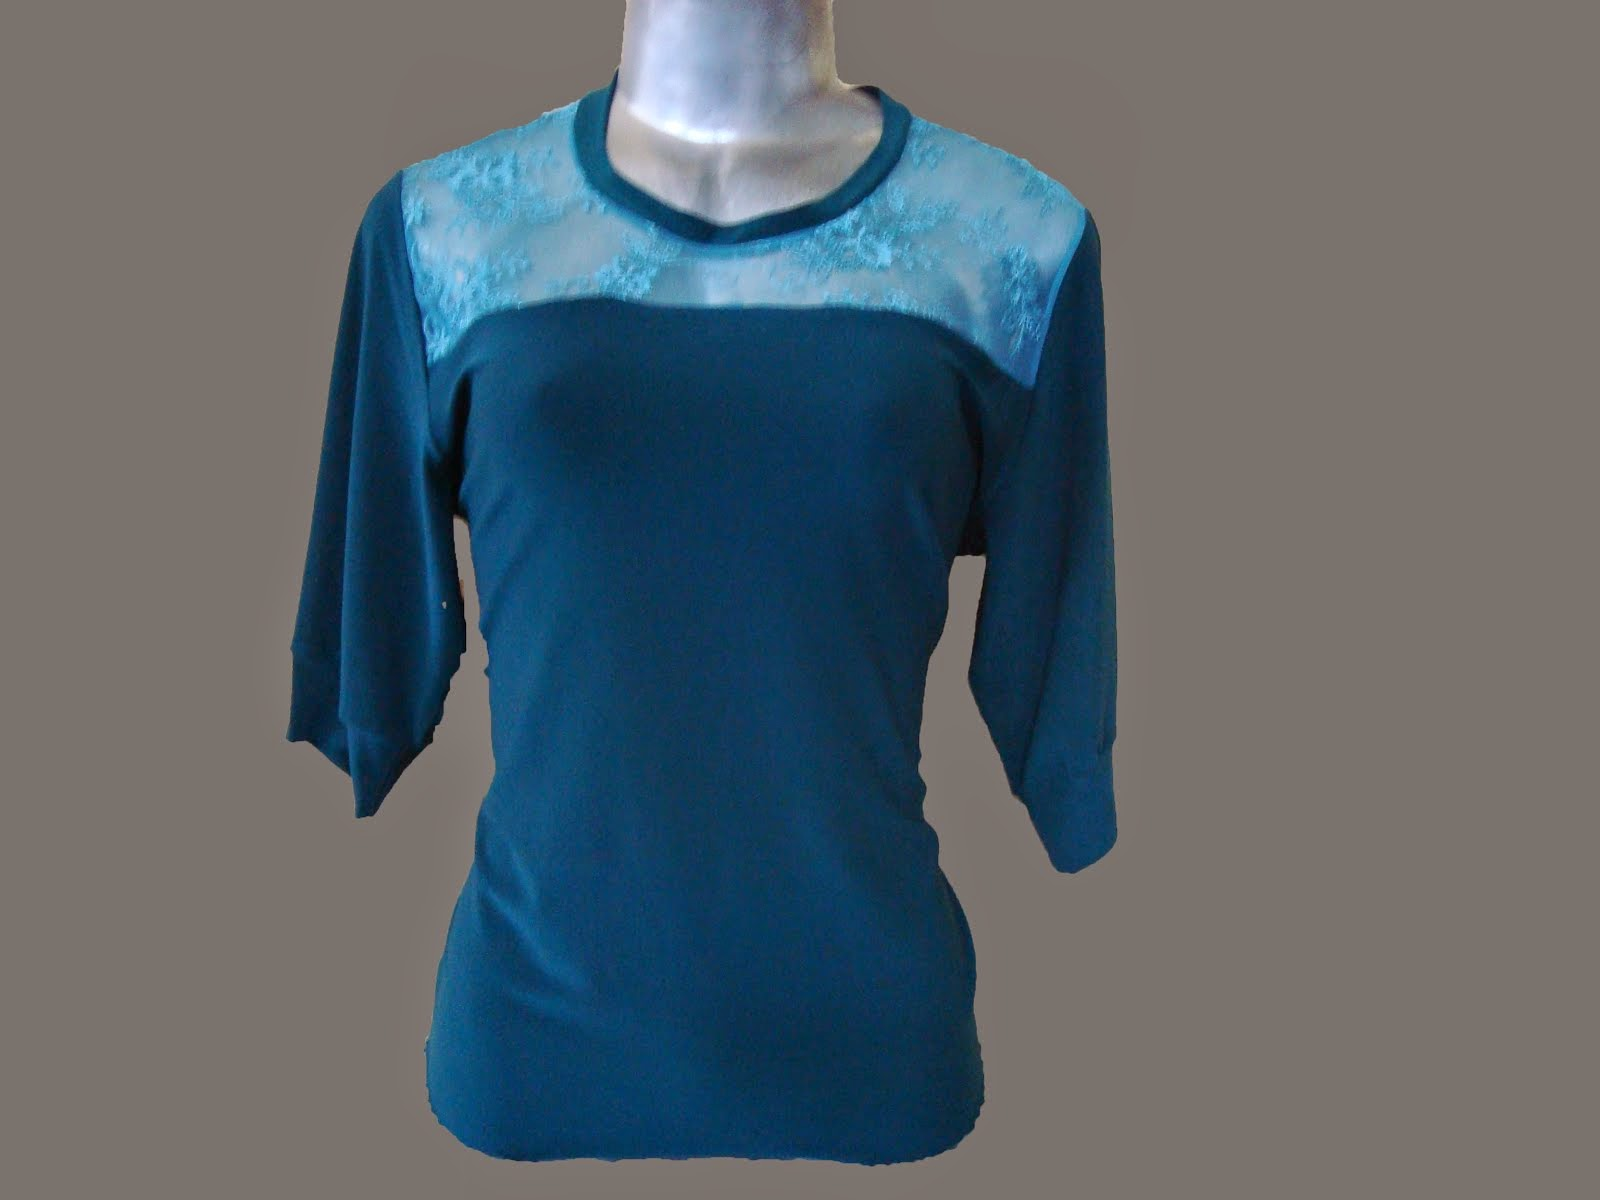 blusa de viscocrepe co renda